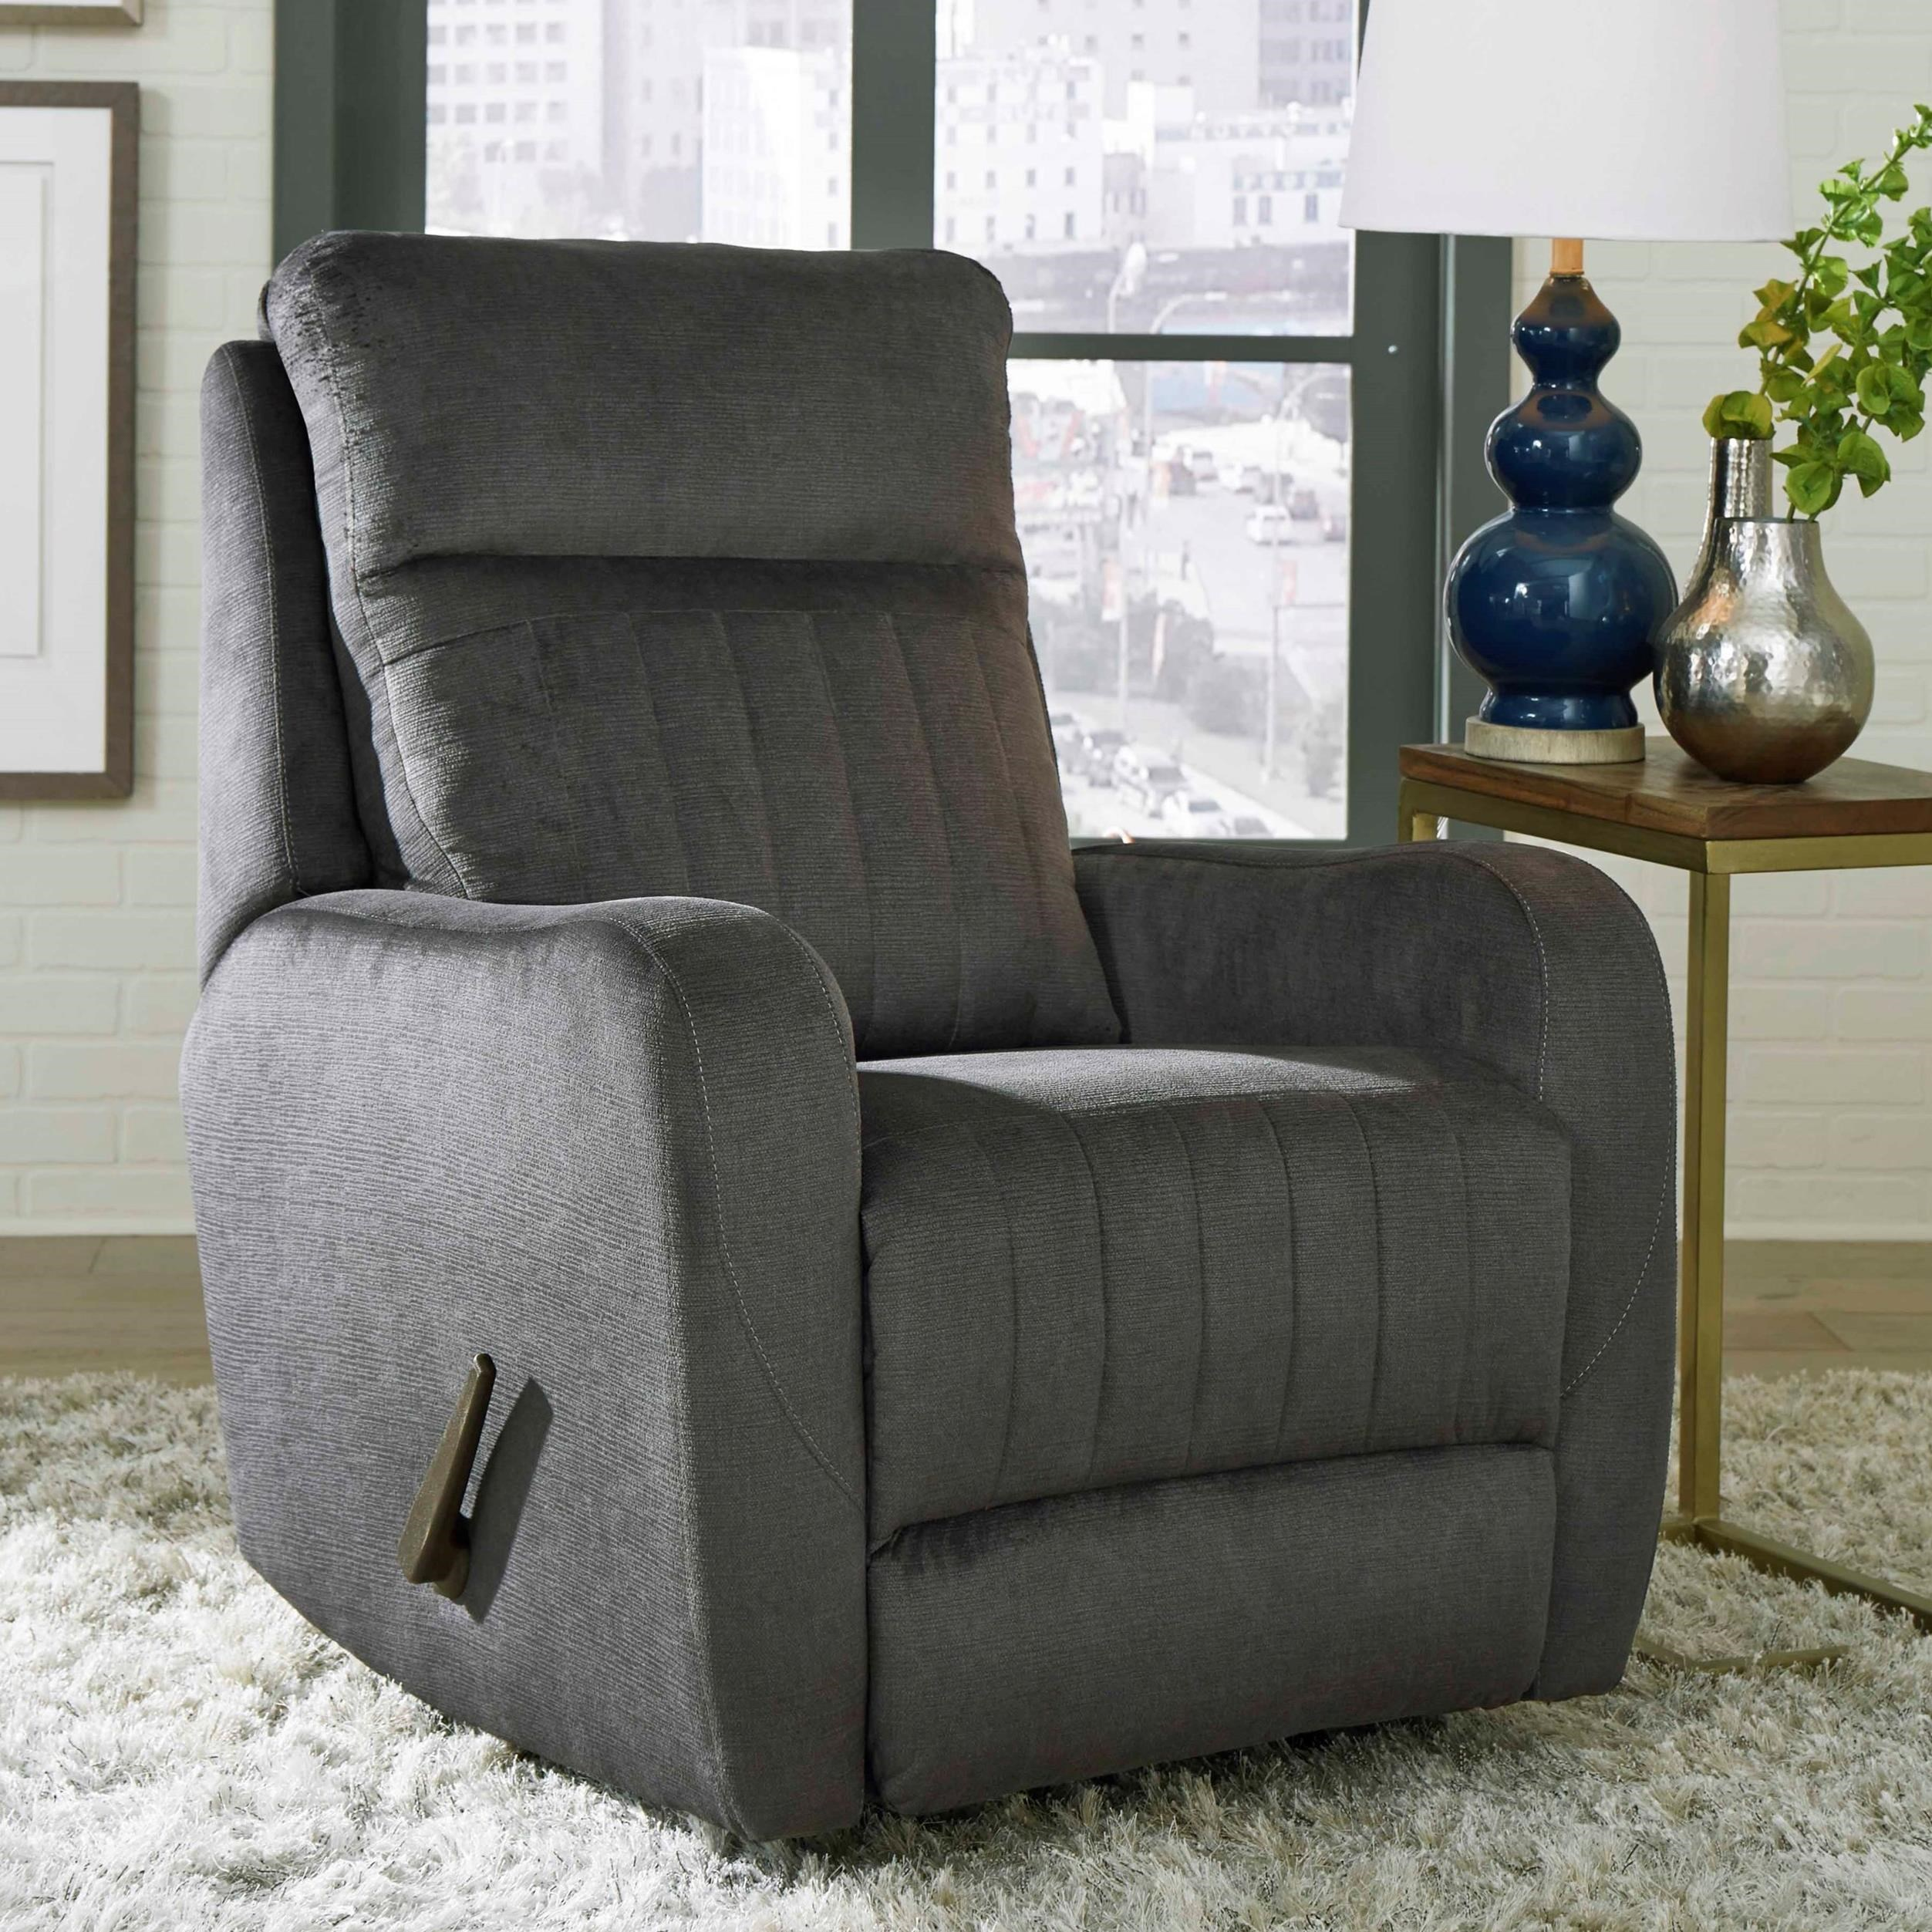 Racetrack Rocker Recliner by Southern Motion at O'Dunk & O'Bright Furniture